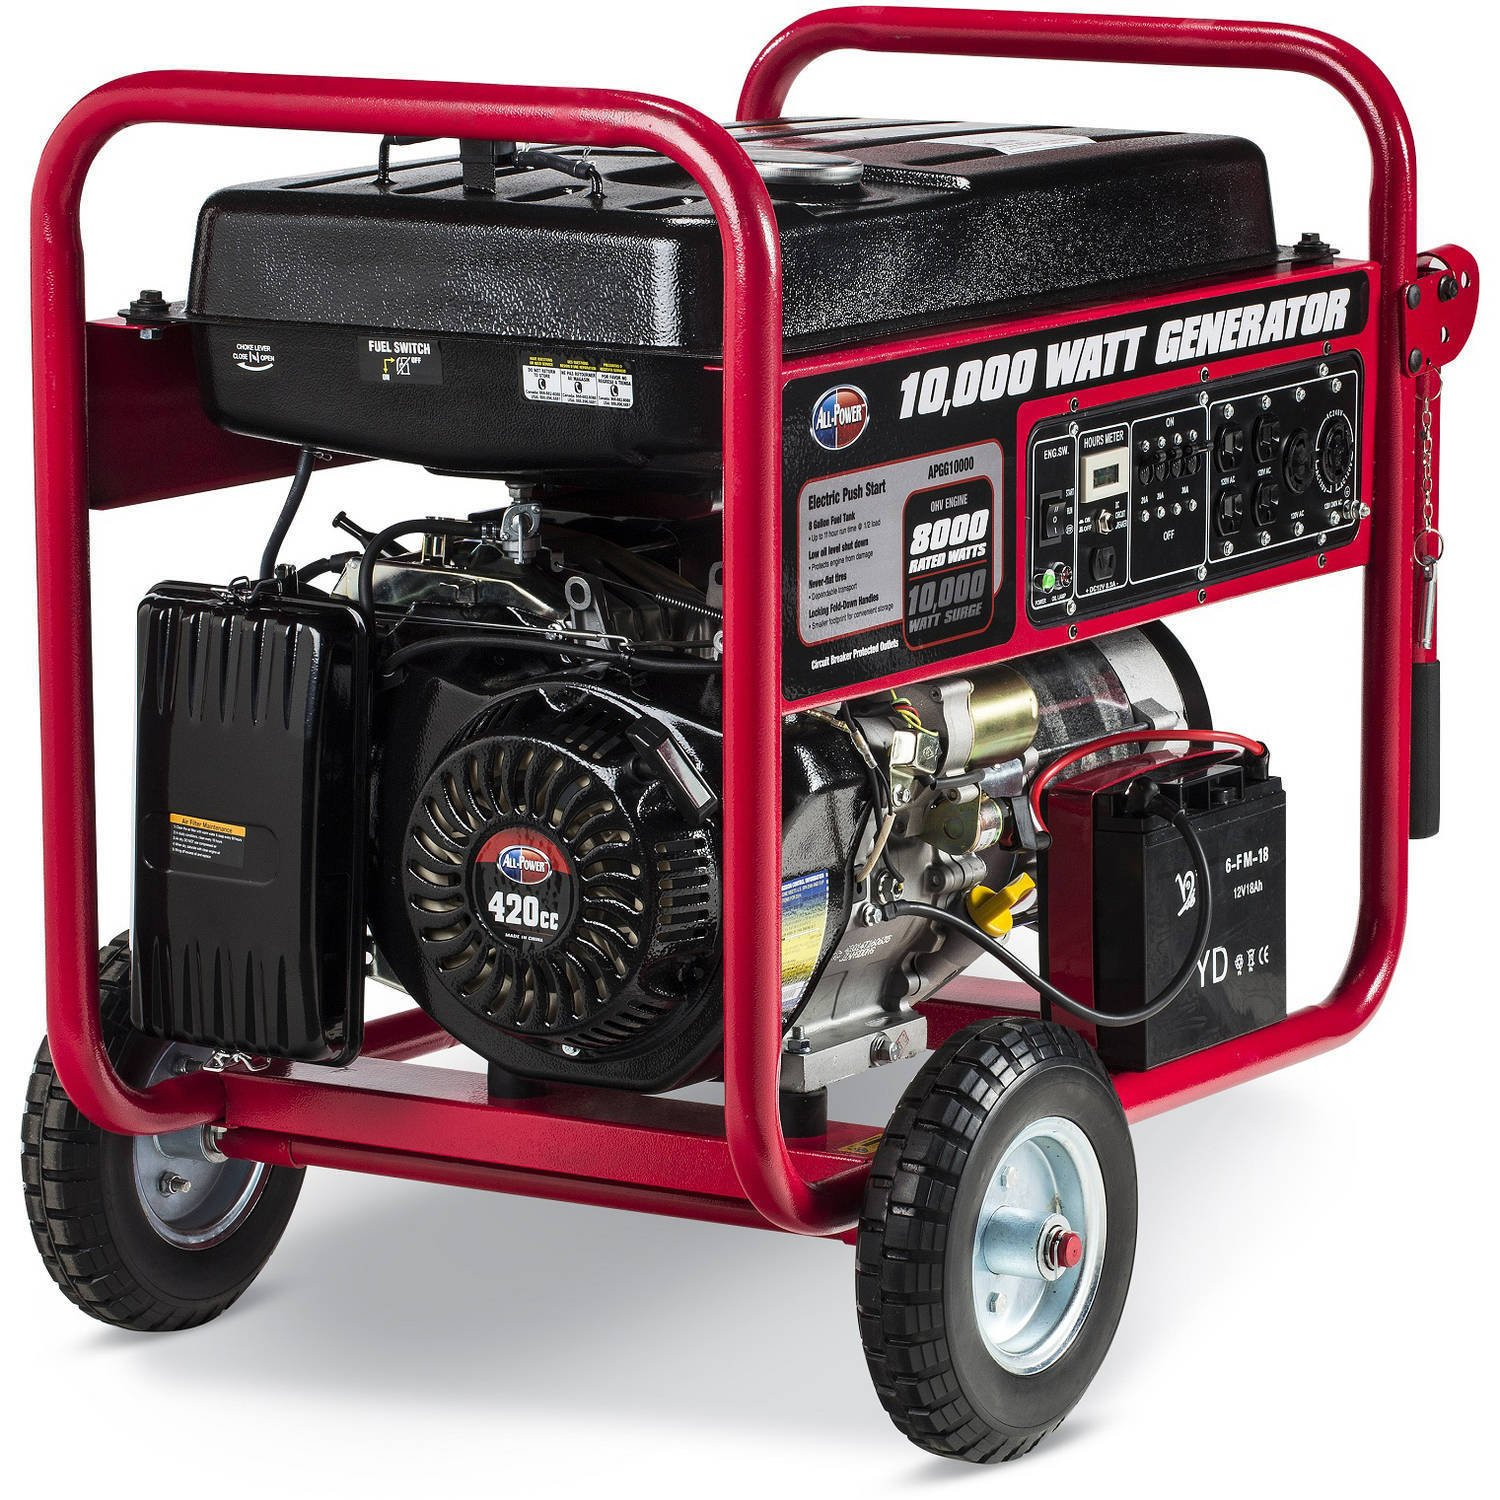 All Power America Apgg10000 10000w Watt Generator With Portable To House Besides Wiring Electric Start Gas For Home Use Emergency Backup Rv Standby